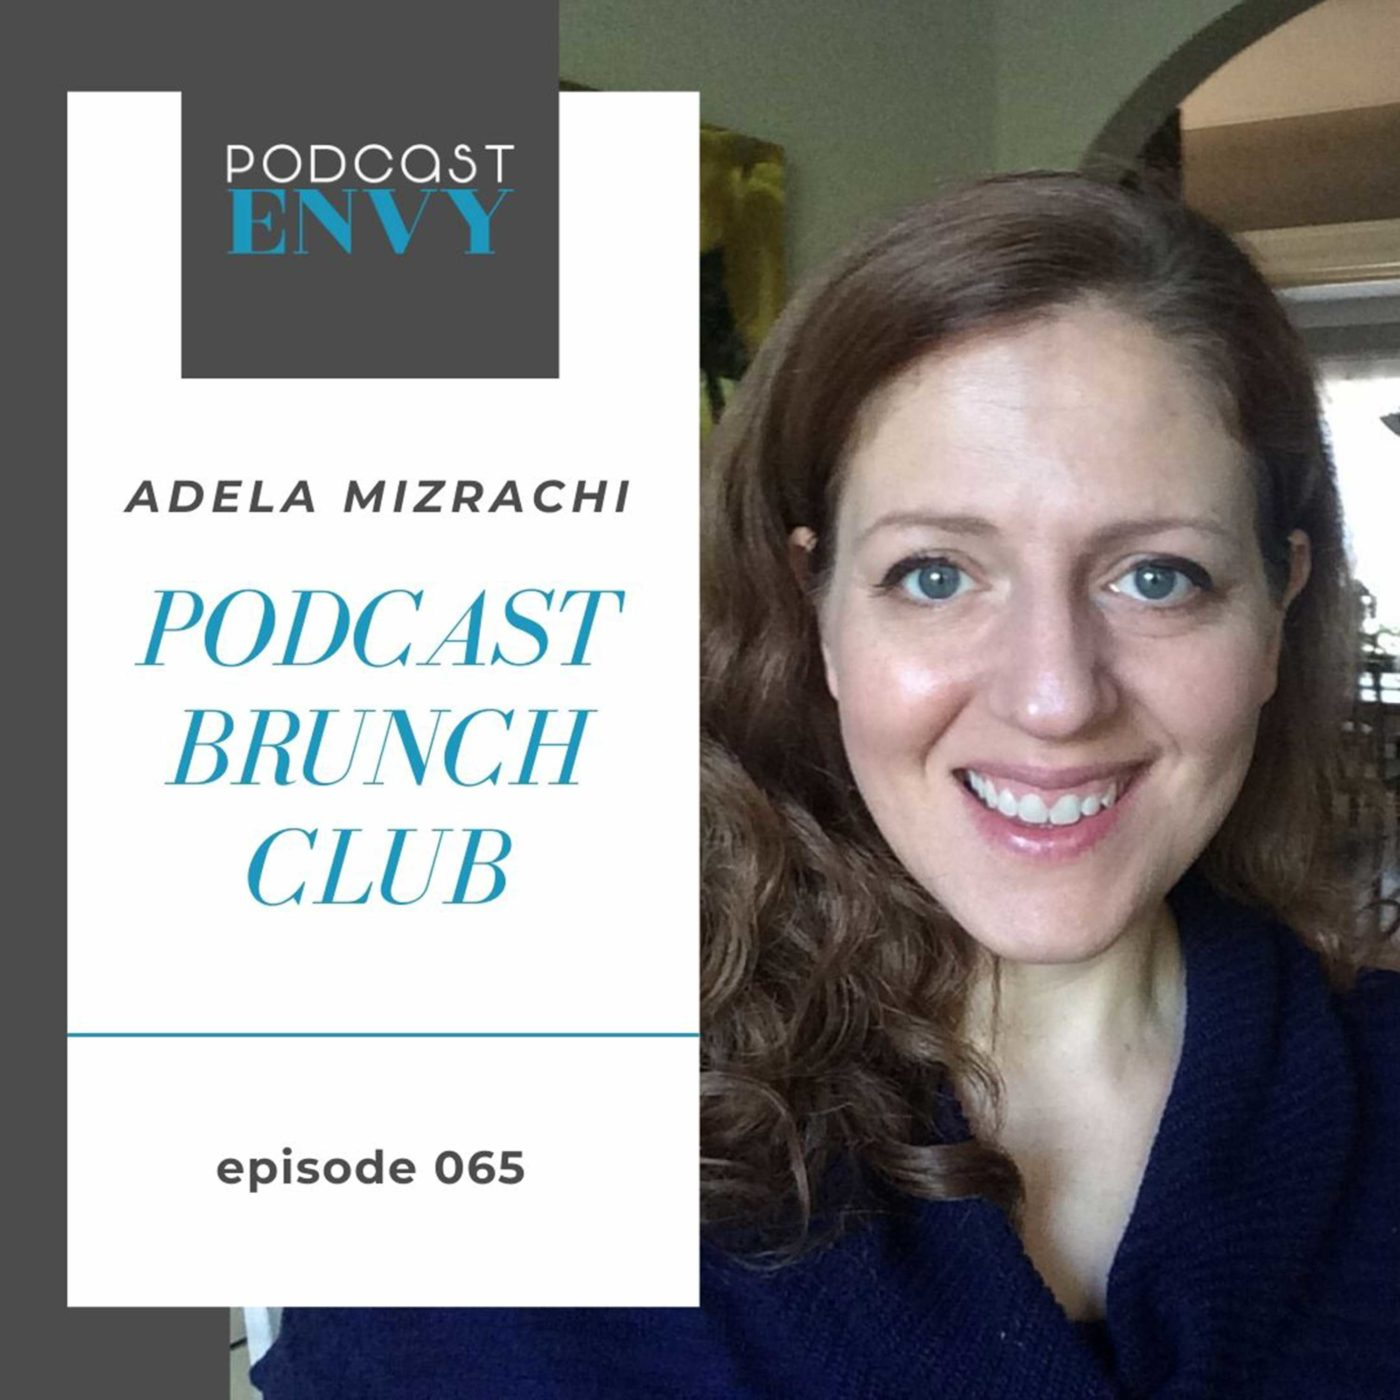 PE065: The Power of In-Person Connection with Adela Mizrachi